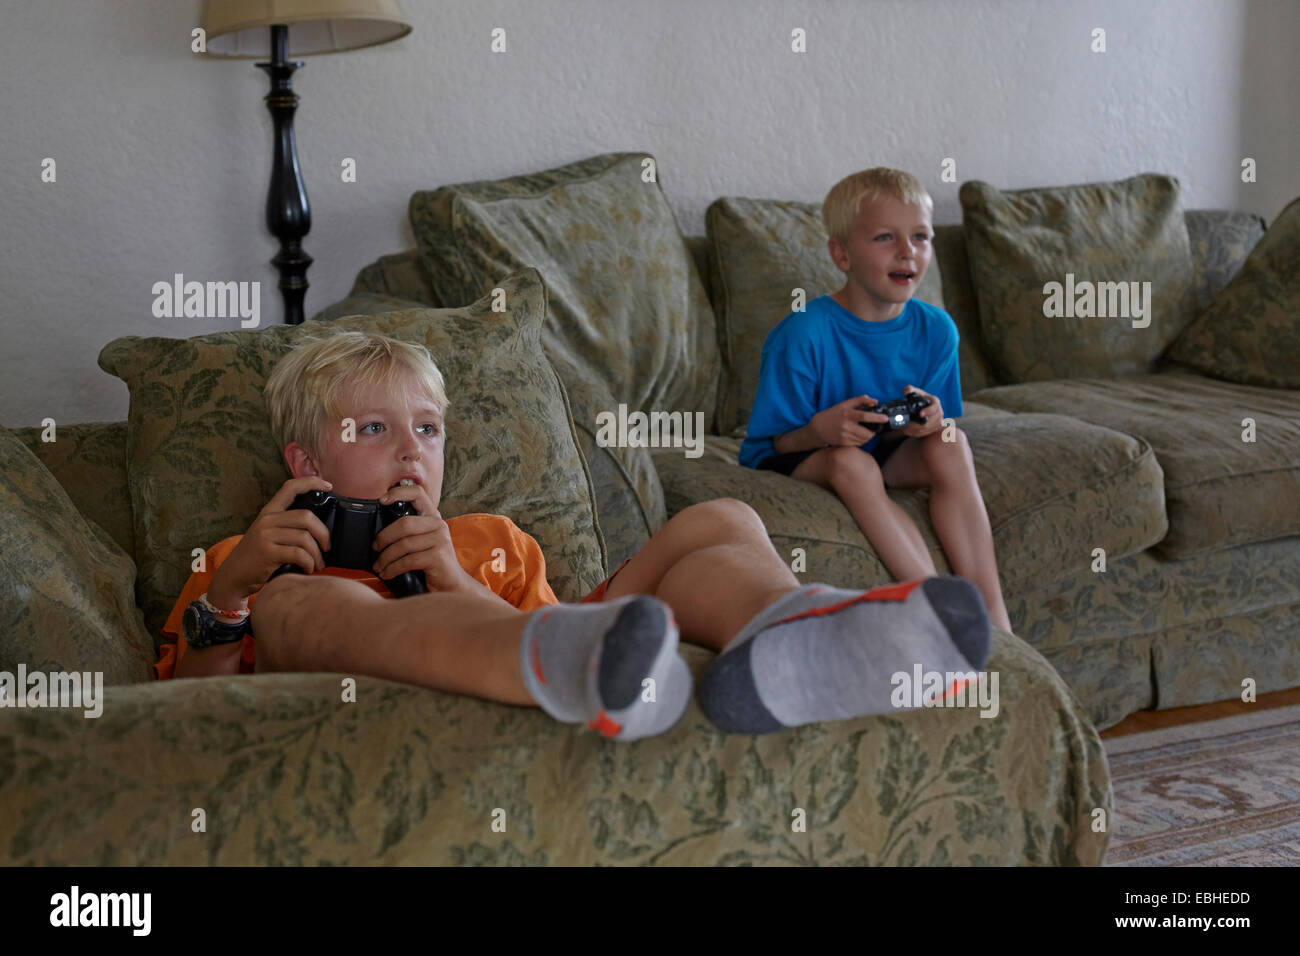 Brothers playing video game in living room Photo Stock